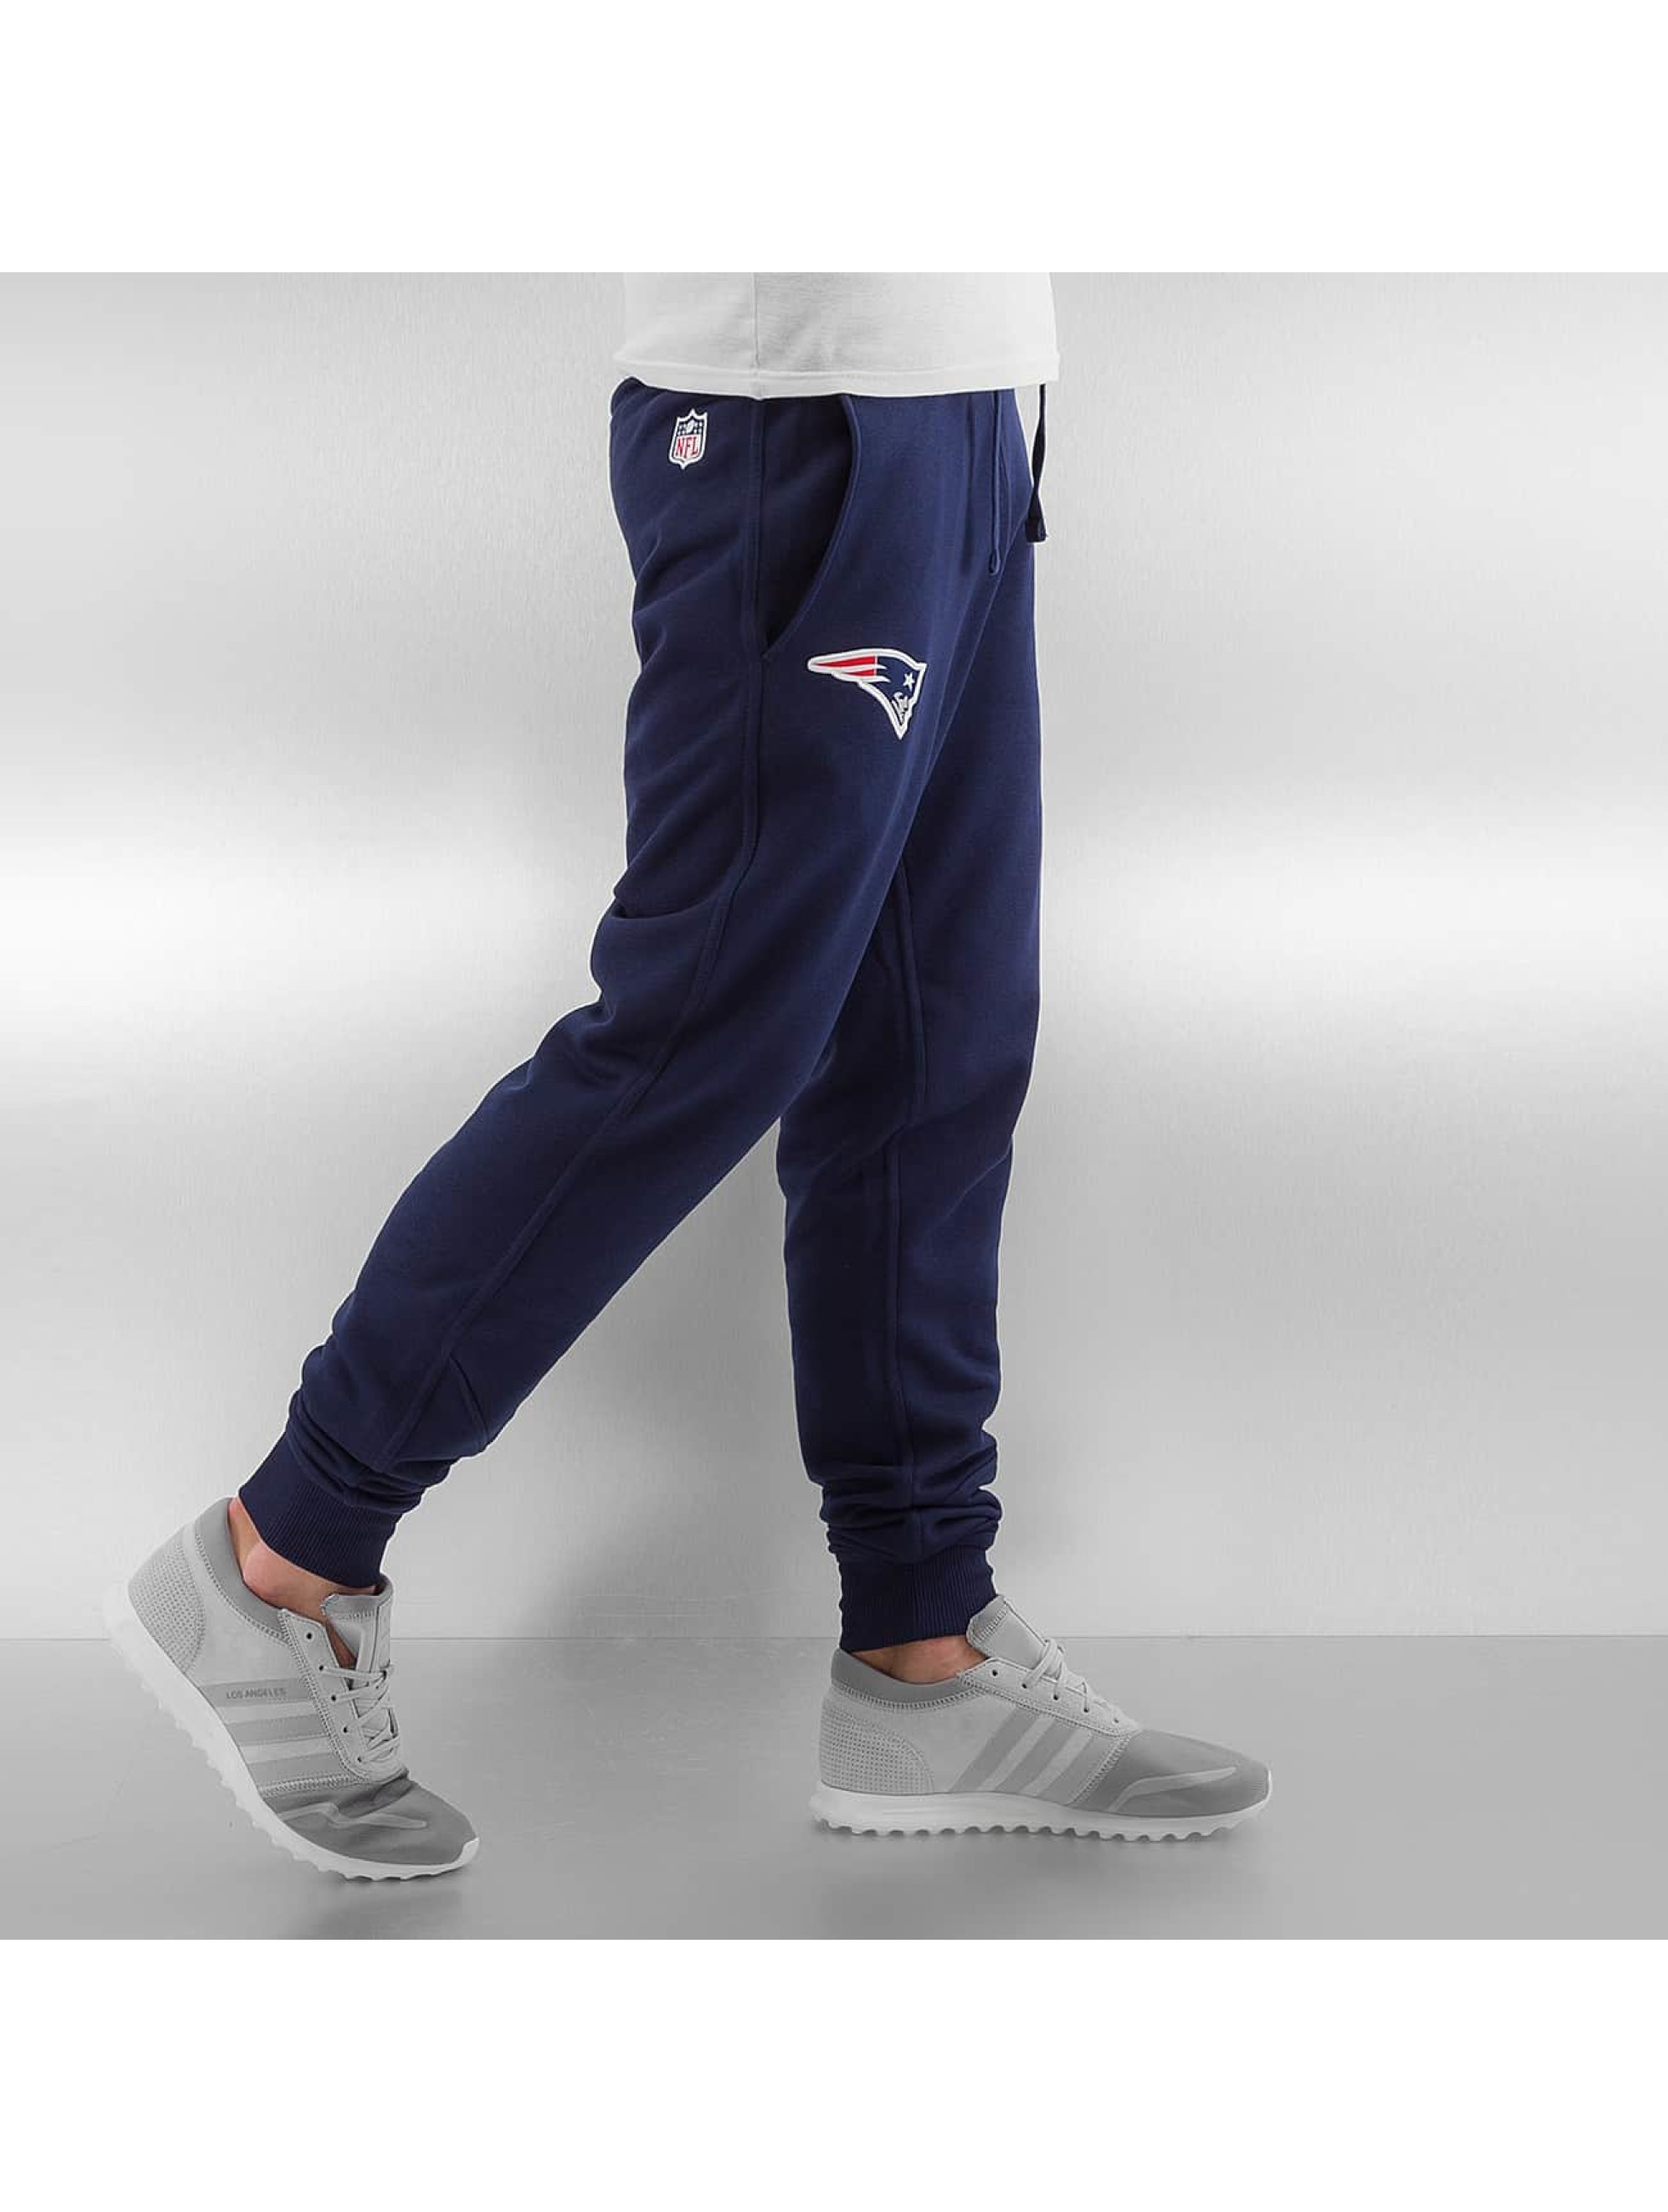 New Era Spodnie do joggingu New England Patriots niebieski